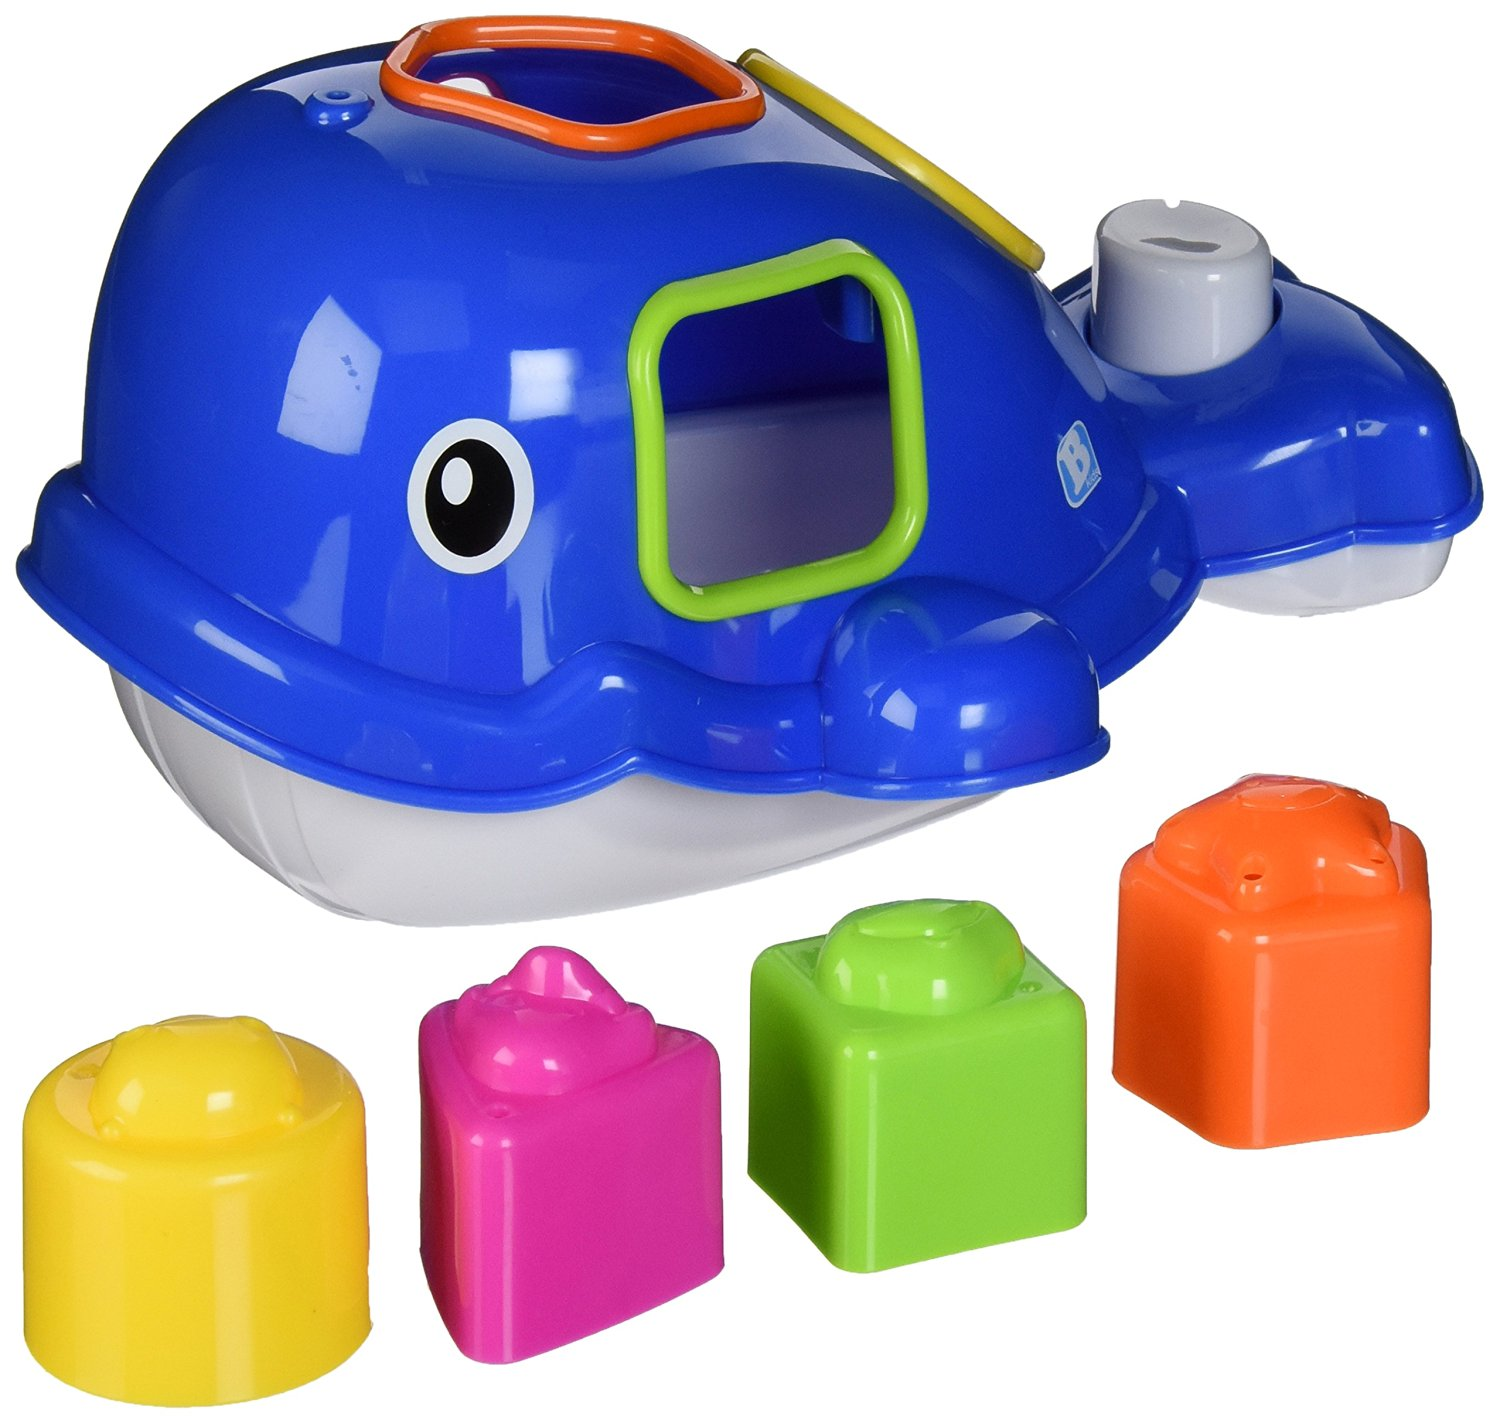 Cheap Toy Boats For Bathtub, find Toy Boats For Bathtub deals on ...